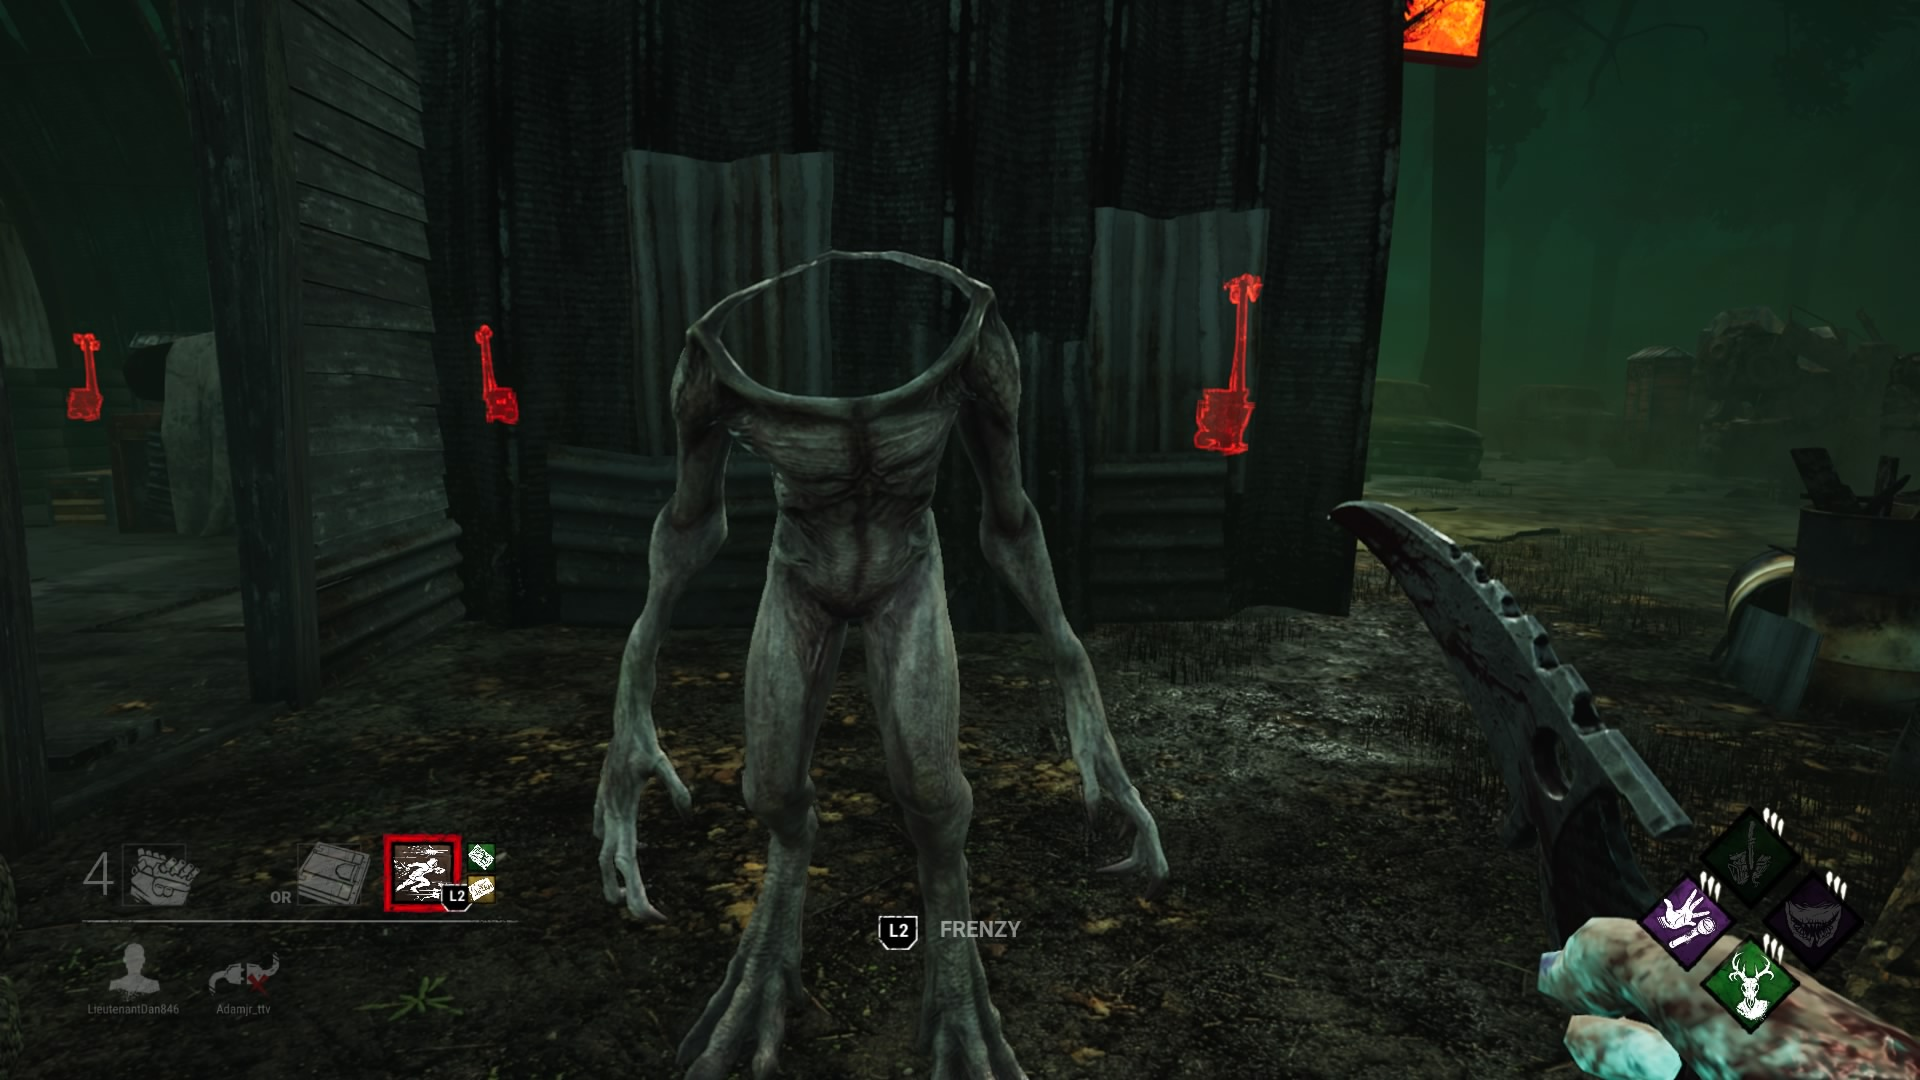 Cursed Image Dead By Daylight